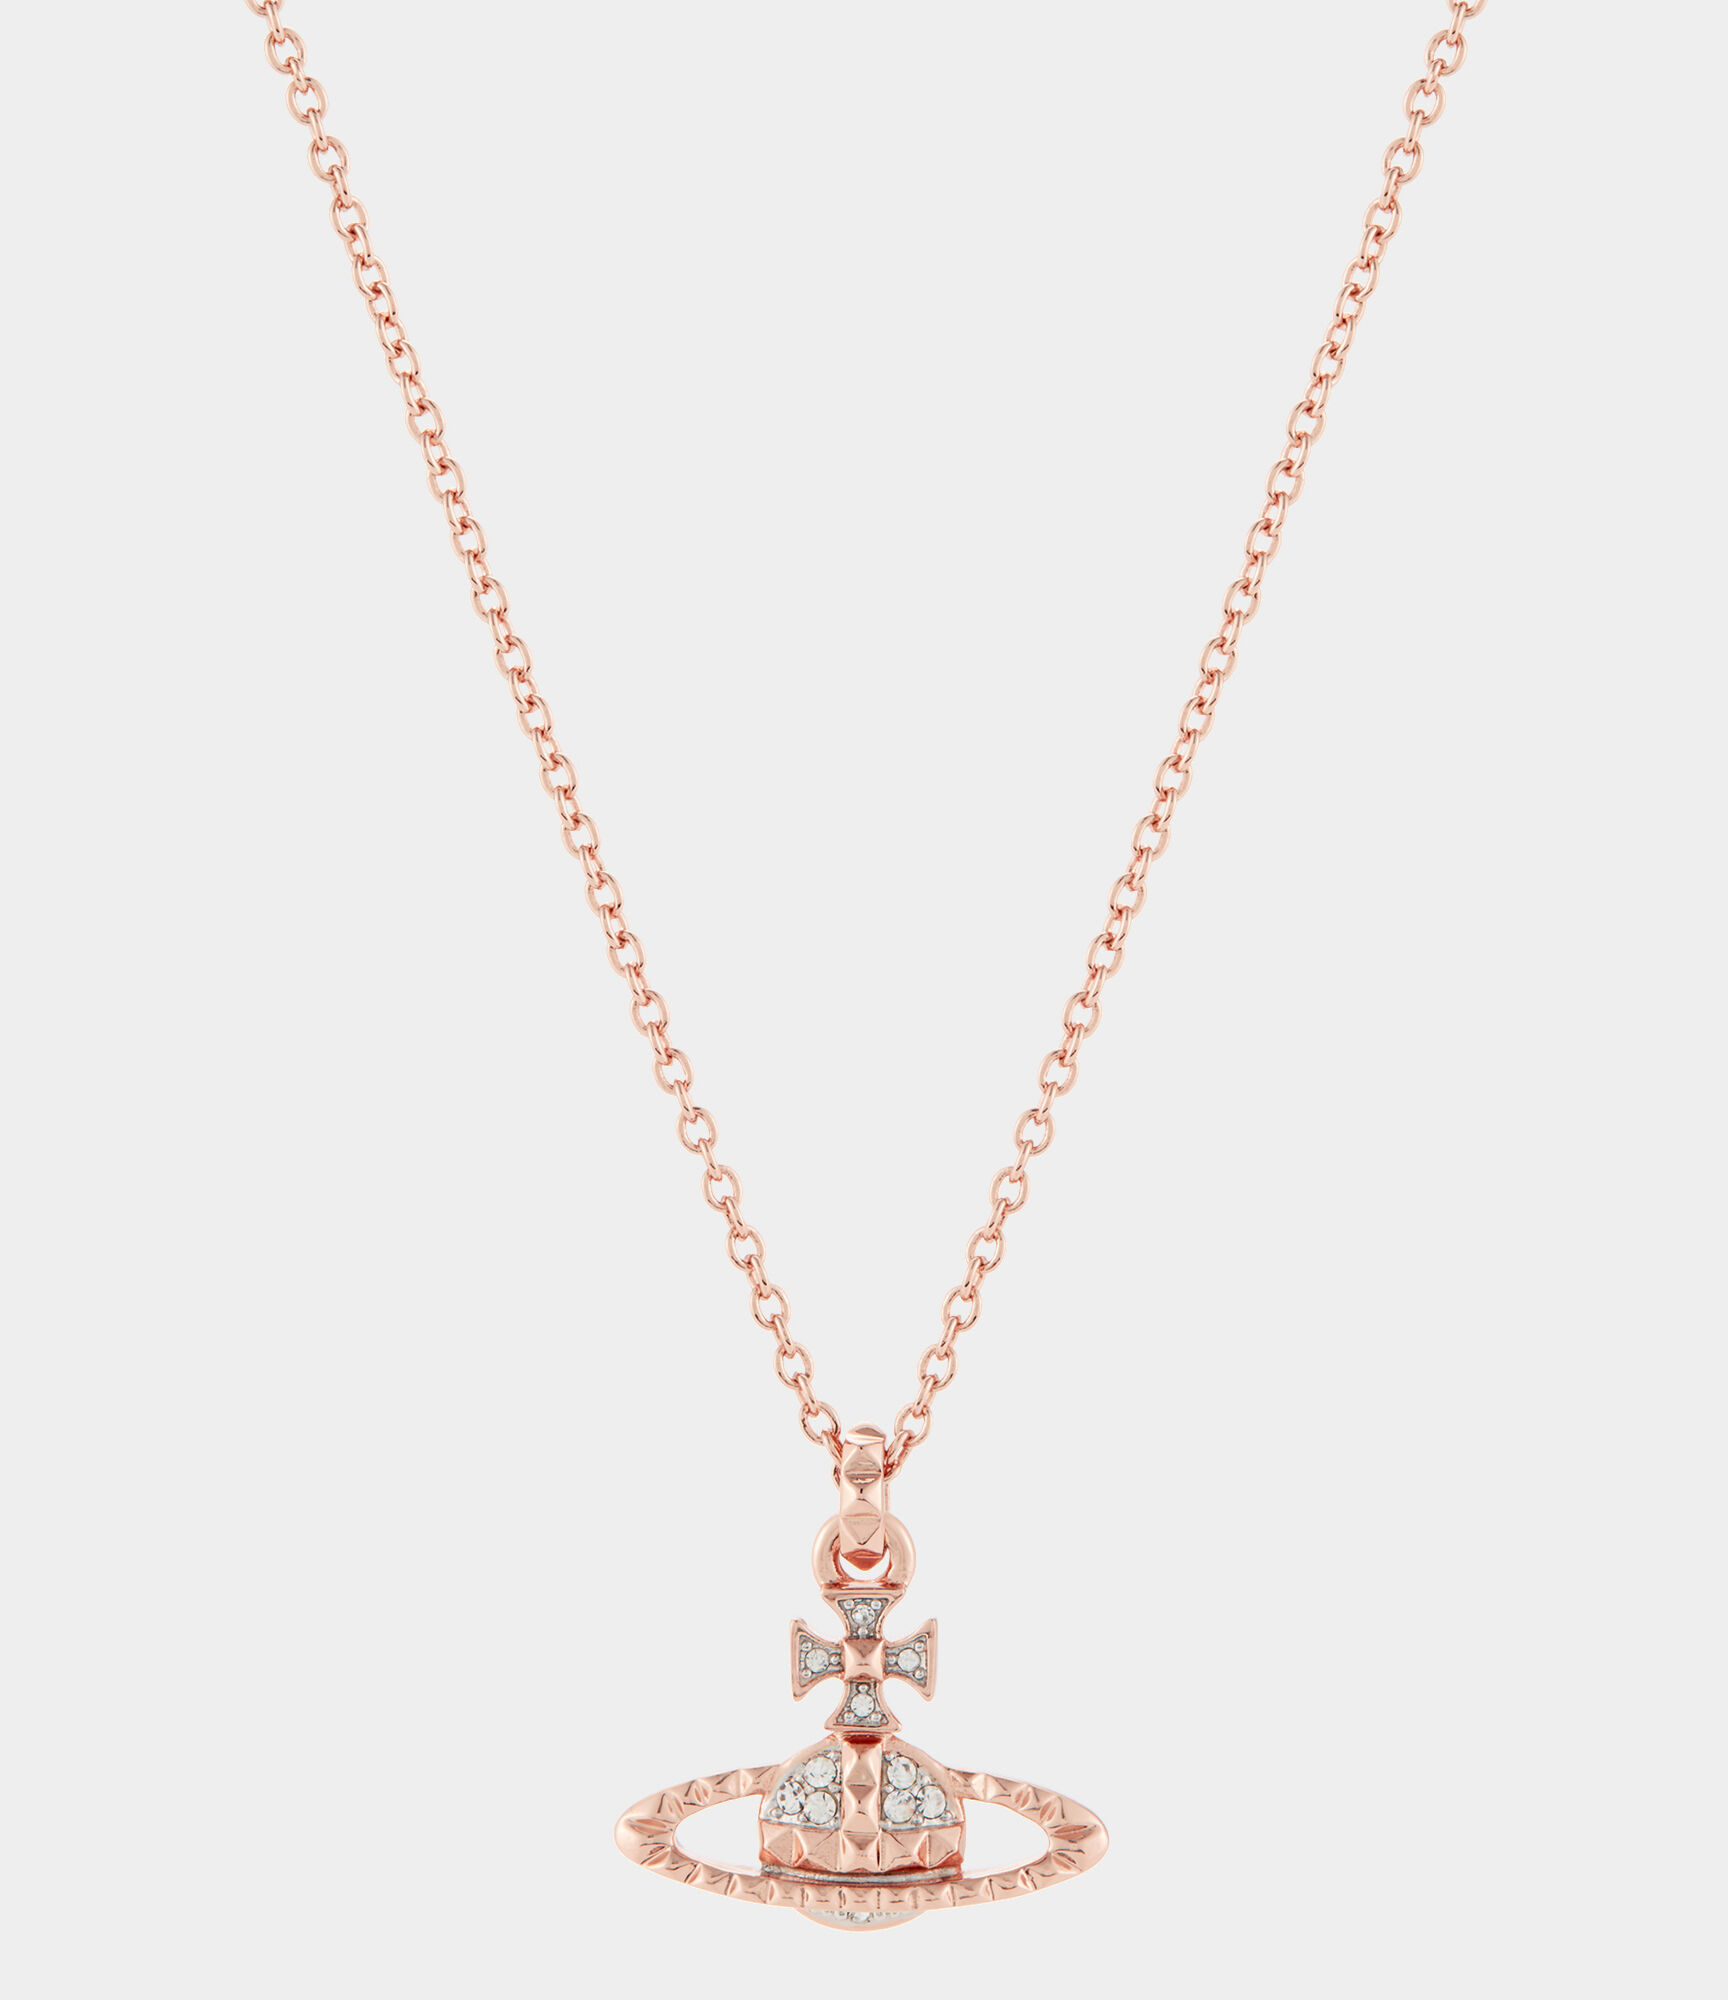 Vivienne Westwood Necklaces, Silver, Rhodium, 2017, One Size